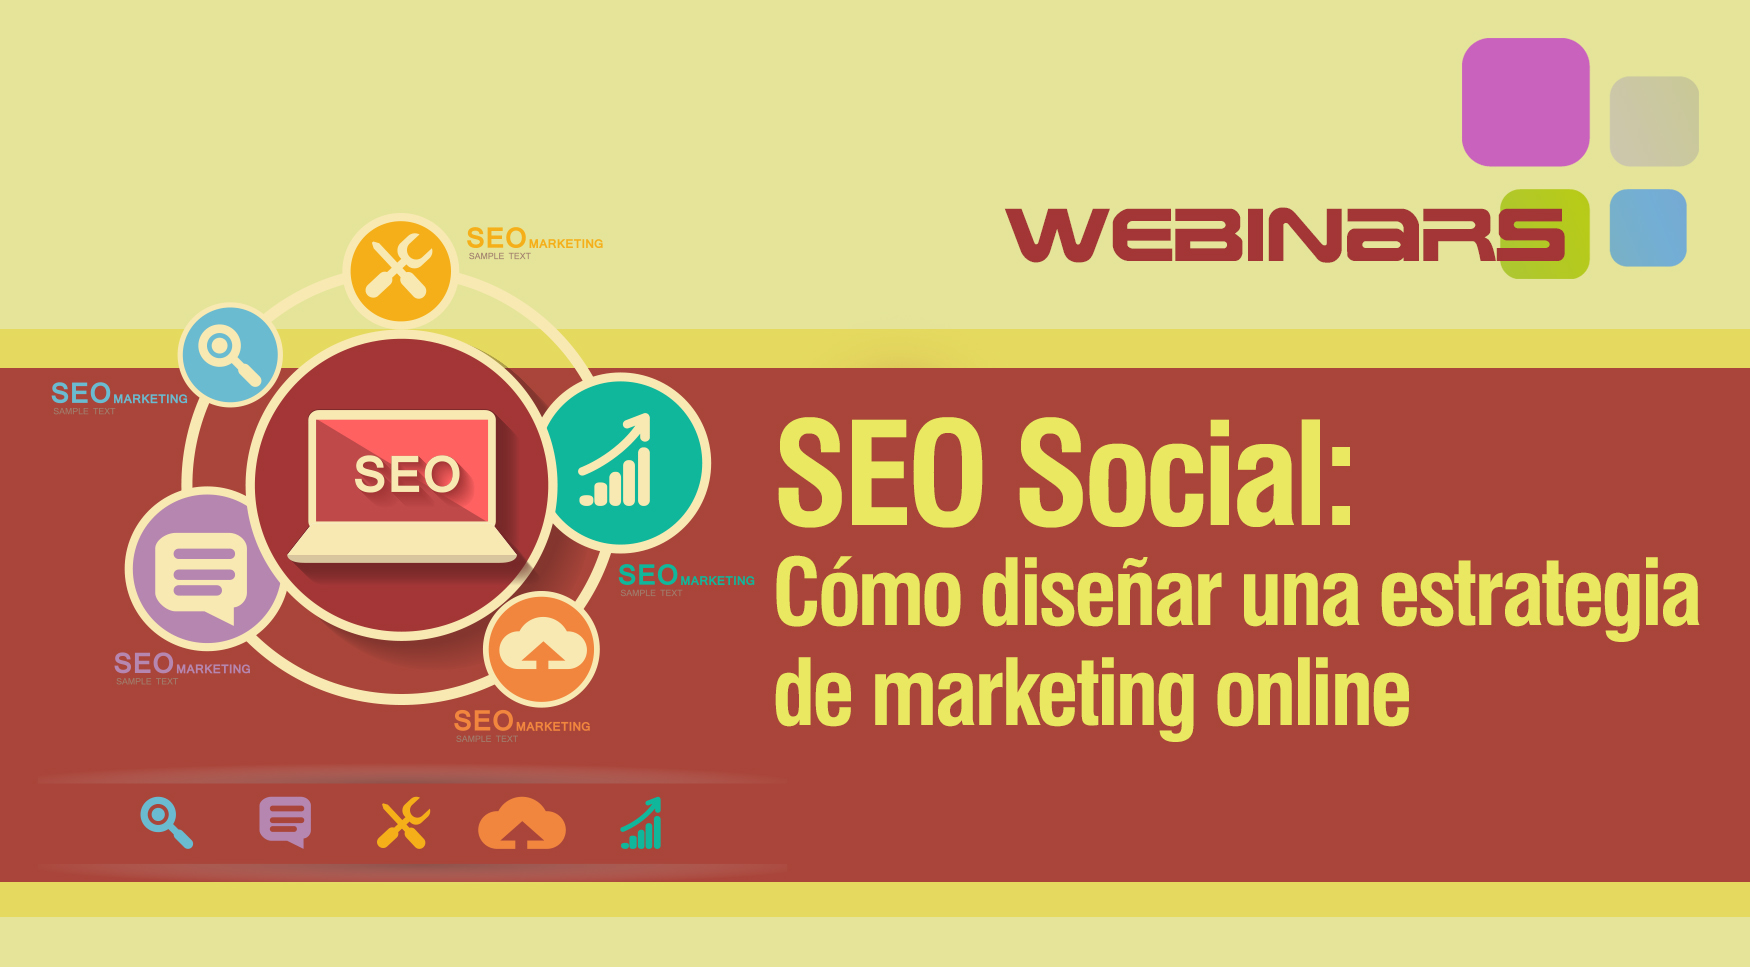 Seo social c mo dise ar una estrategia de marketing for Como disenar una cocina online gratis